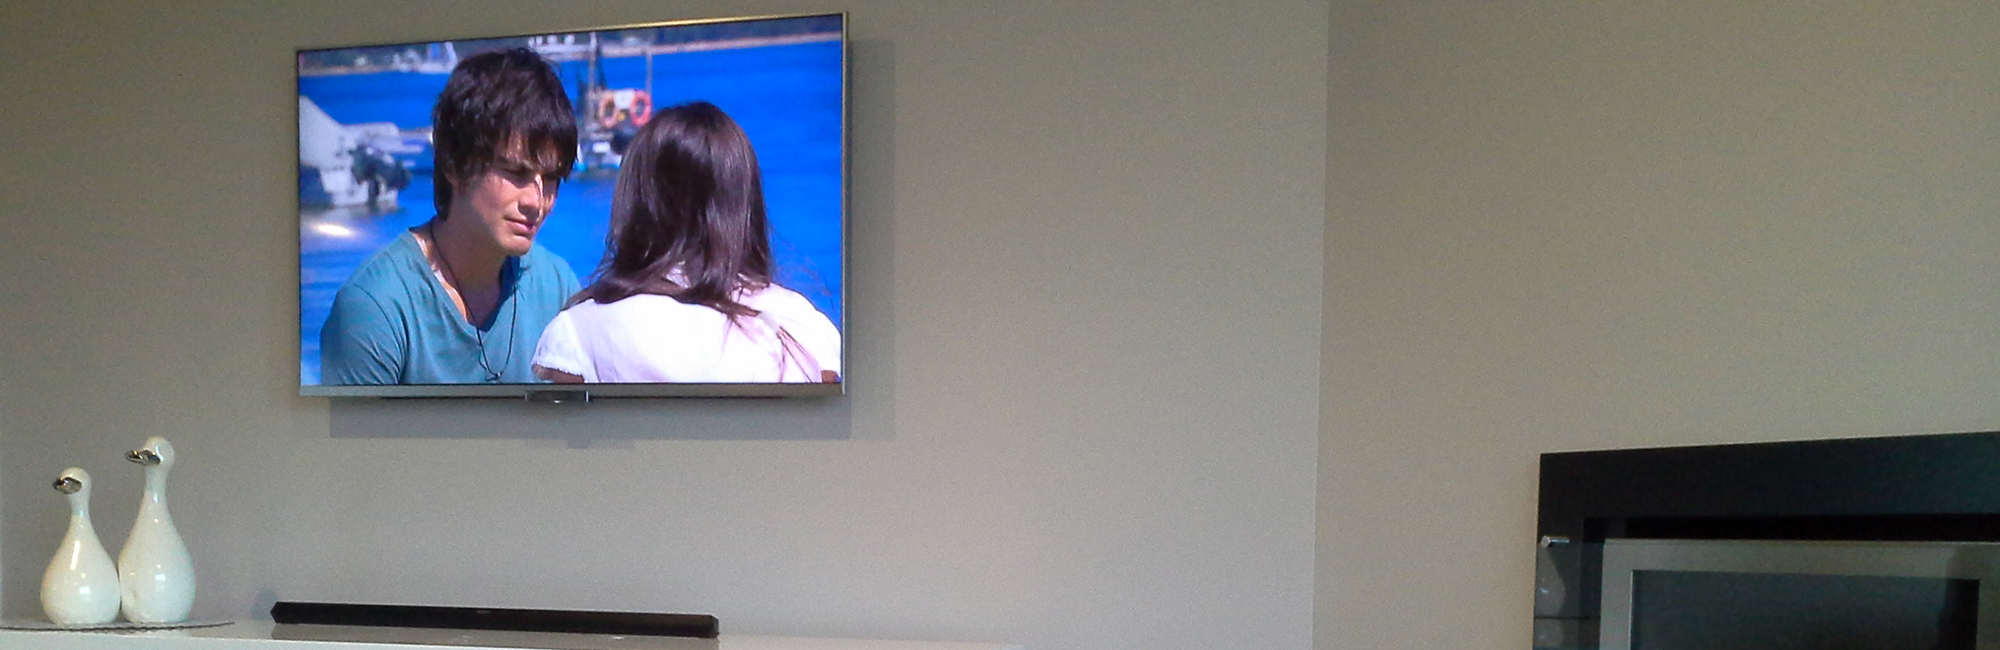 Wall mounted TV done by experts from Brendans Home Audio Visual